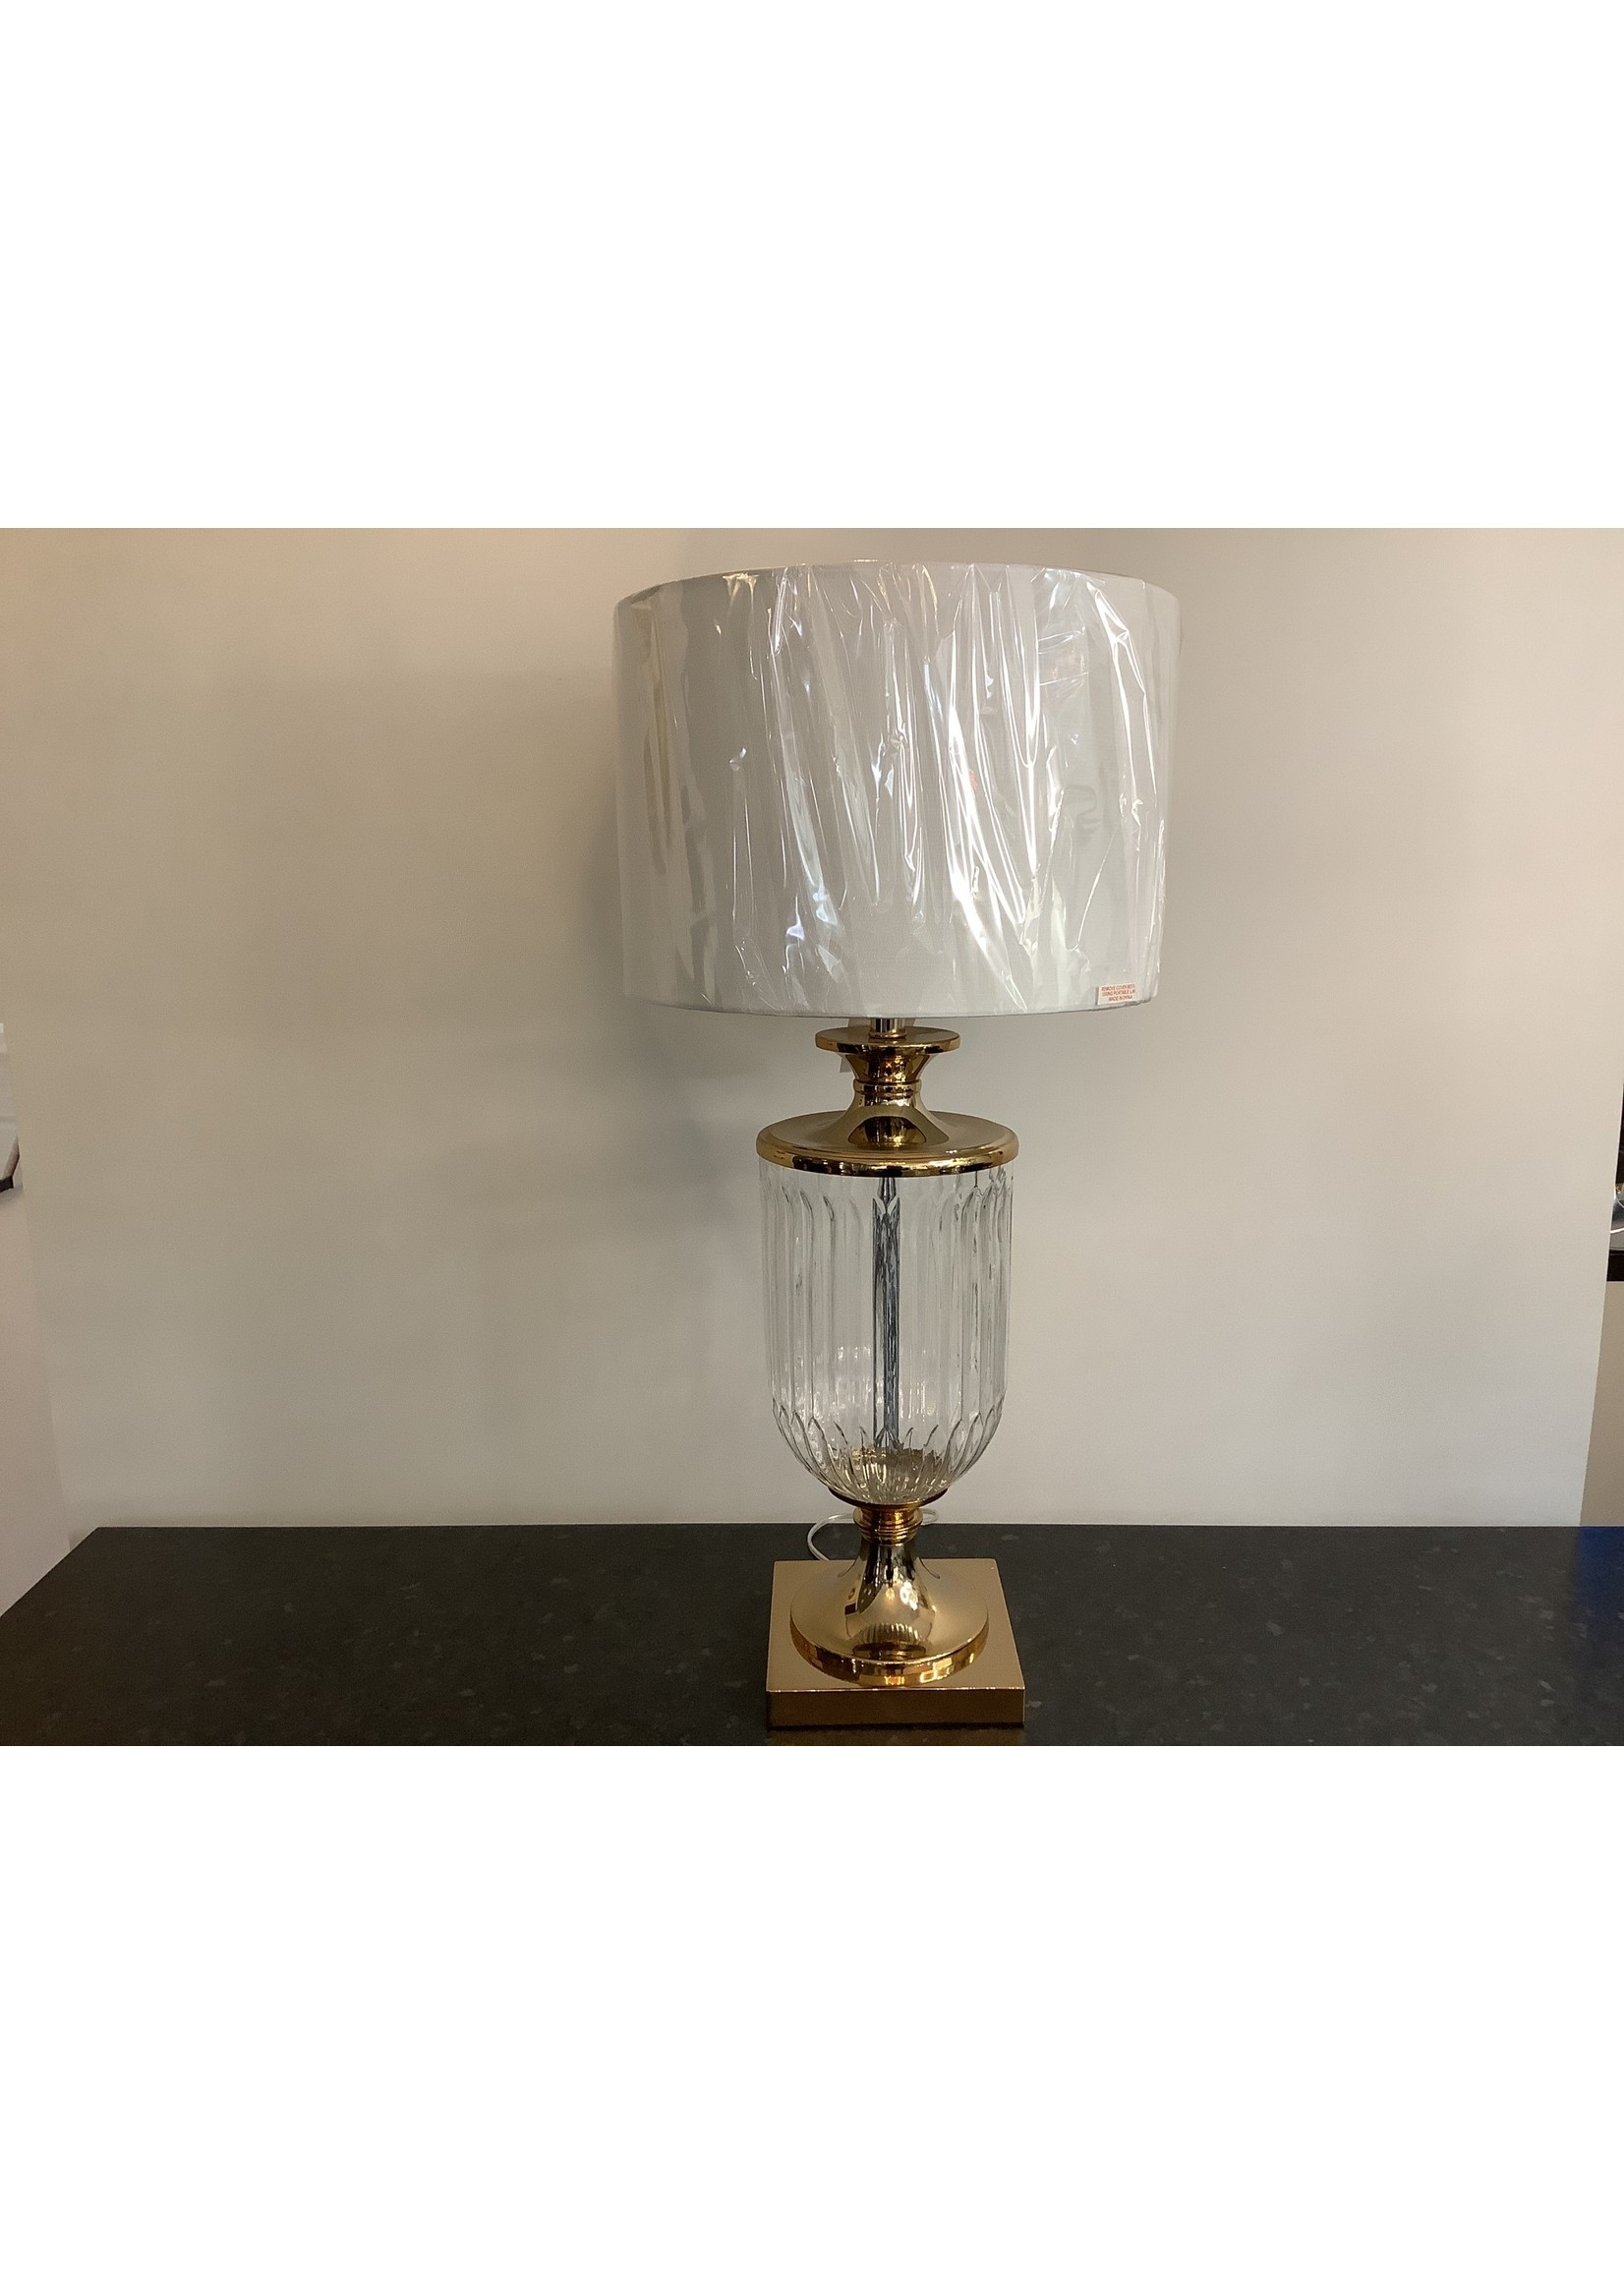 Lamp Glass & Gold With White Shade 79cm x 38cm